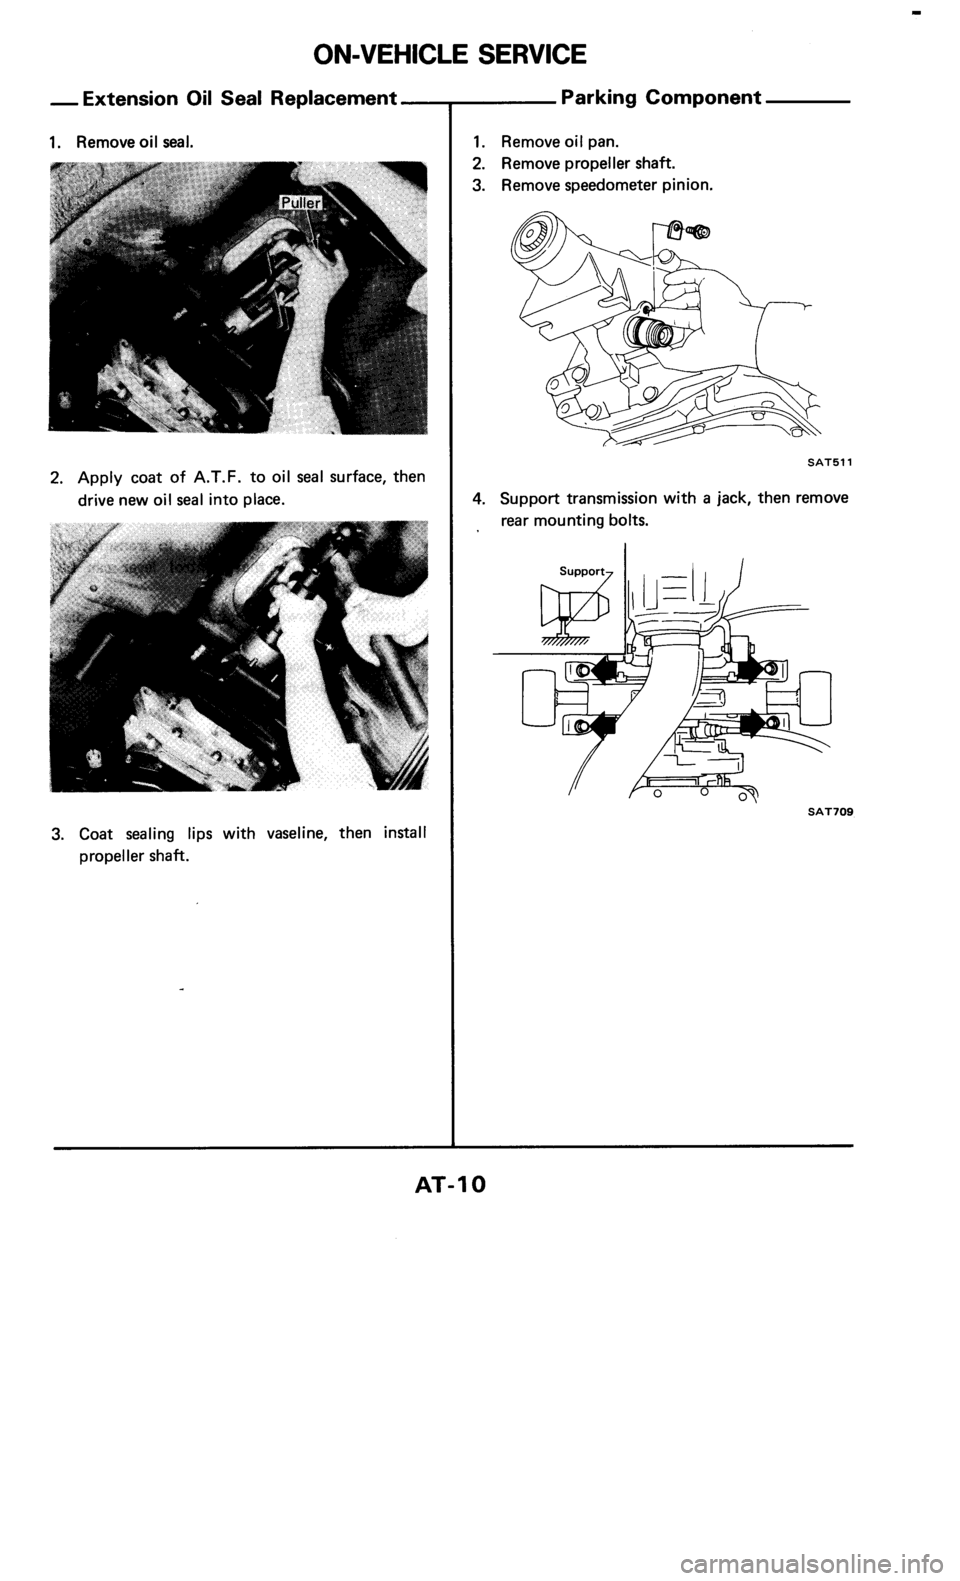 NISSAN 300ZX 1985 Z31 Automatic Transmission Workshop Manual, Page 10